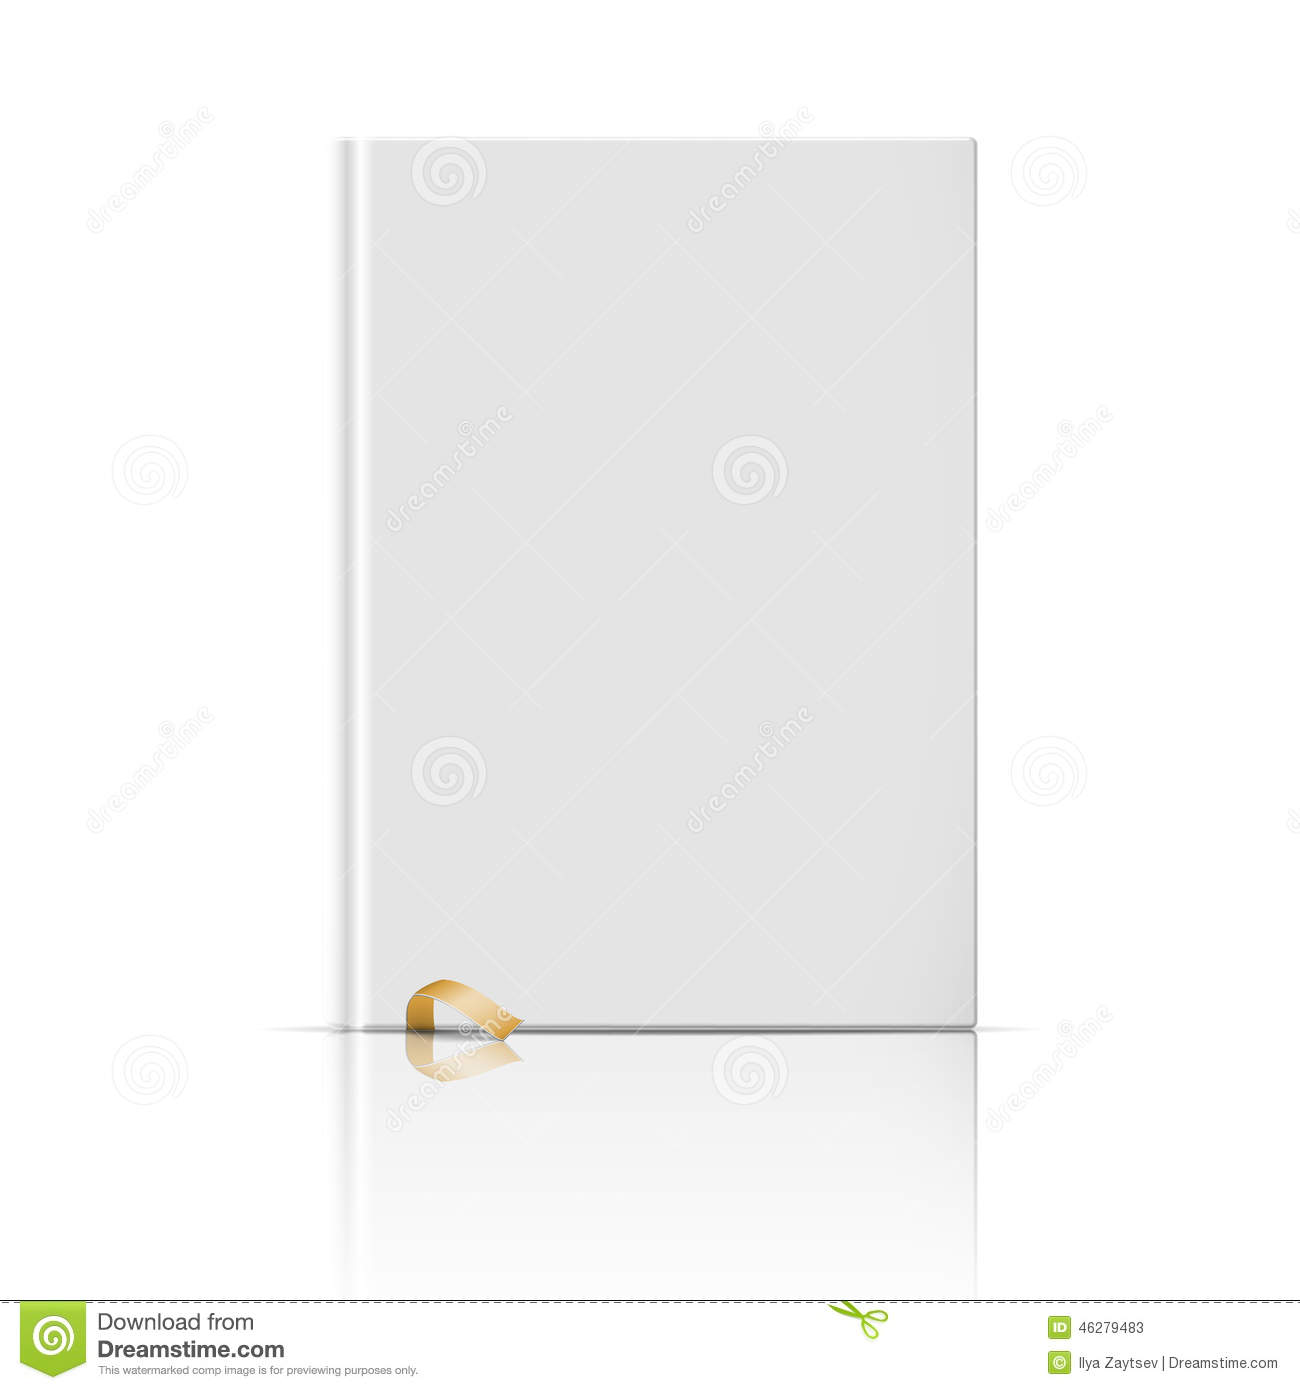 Blank Book Cover Vector Illustration Free : Blank vertical book template with gold bookmark stock